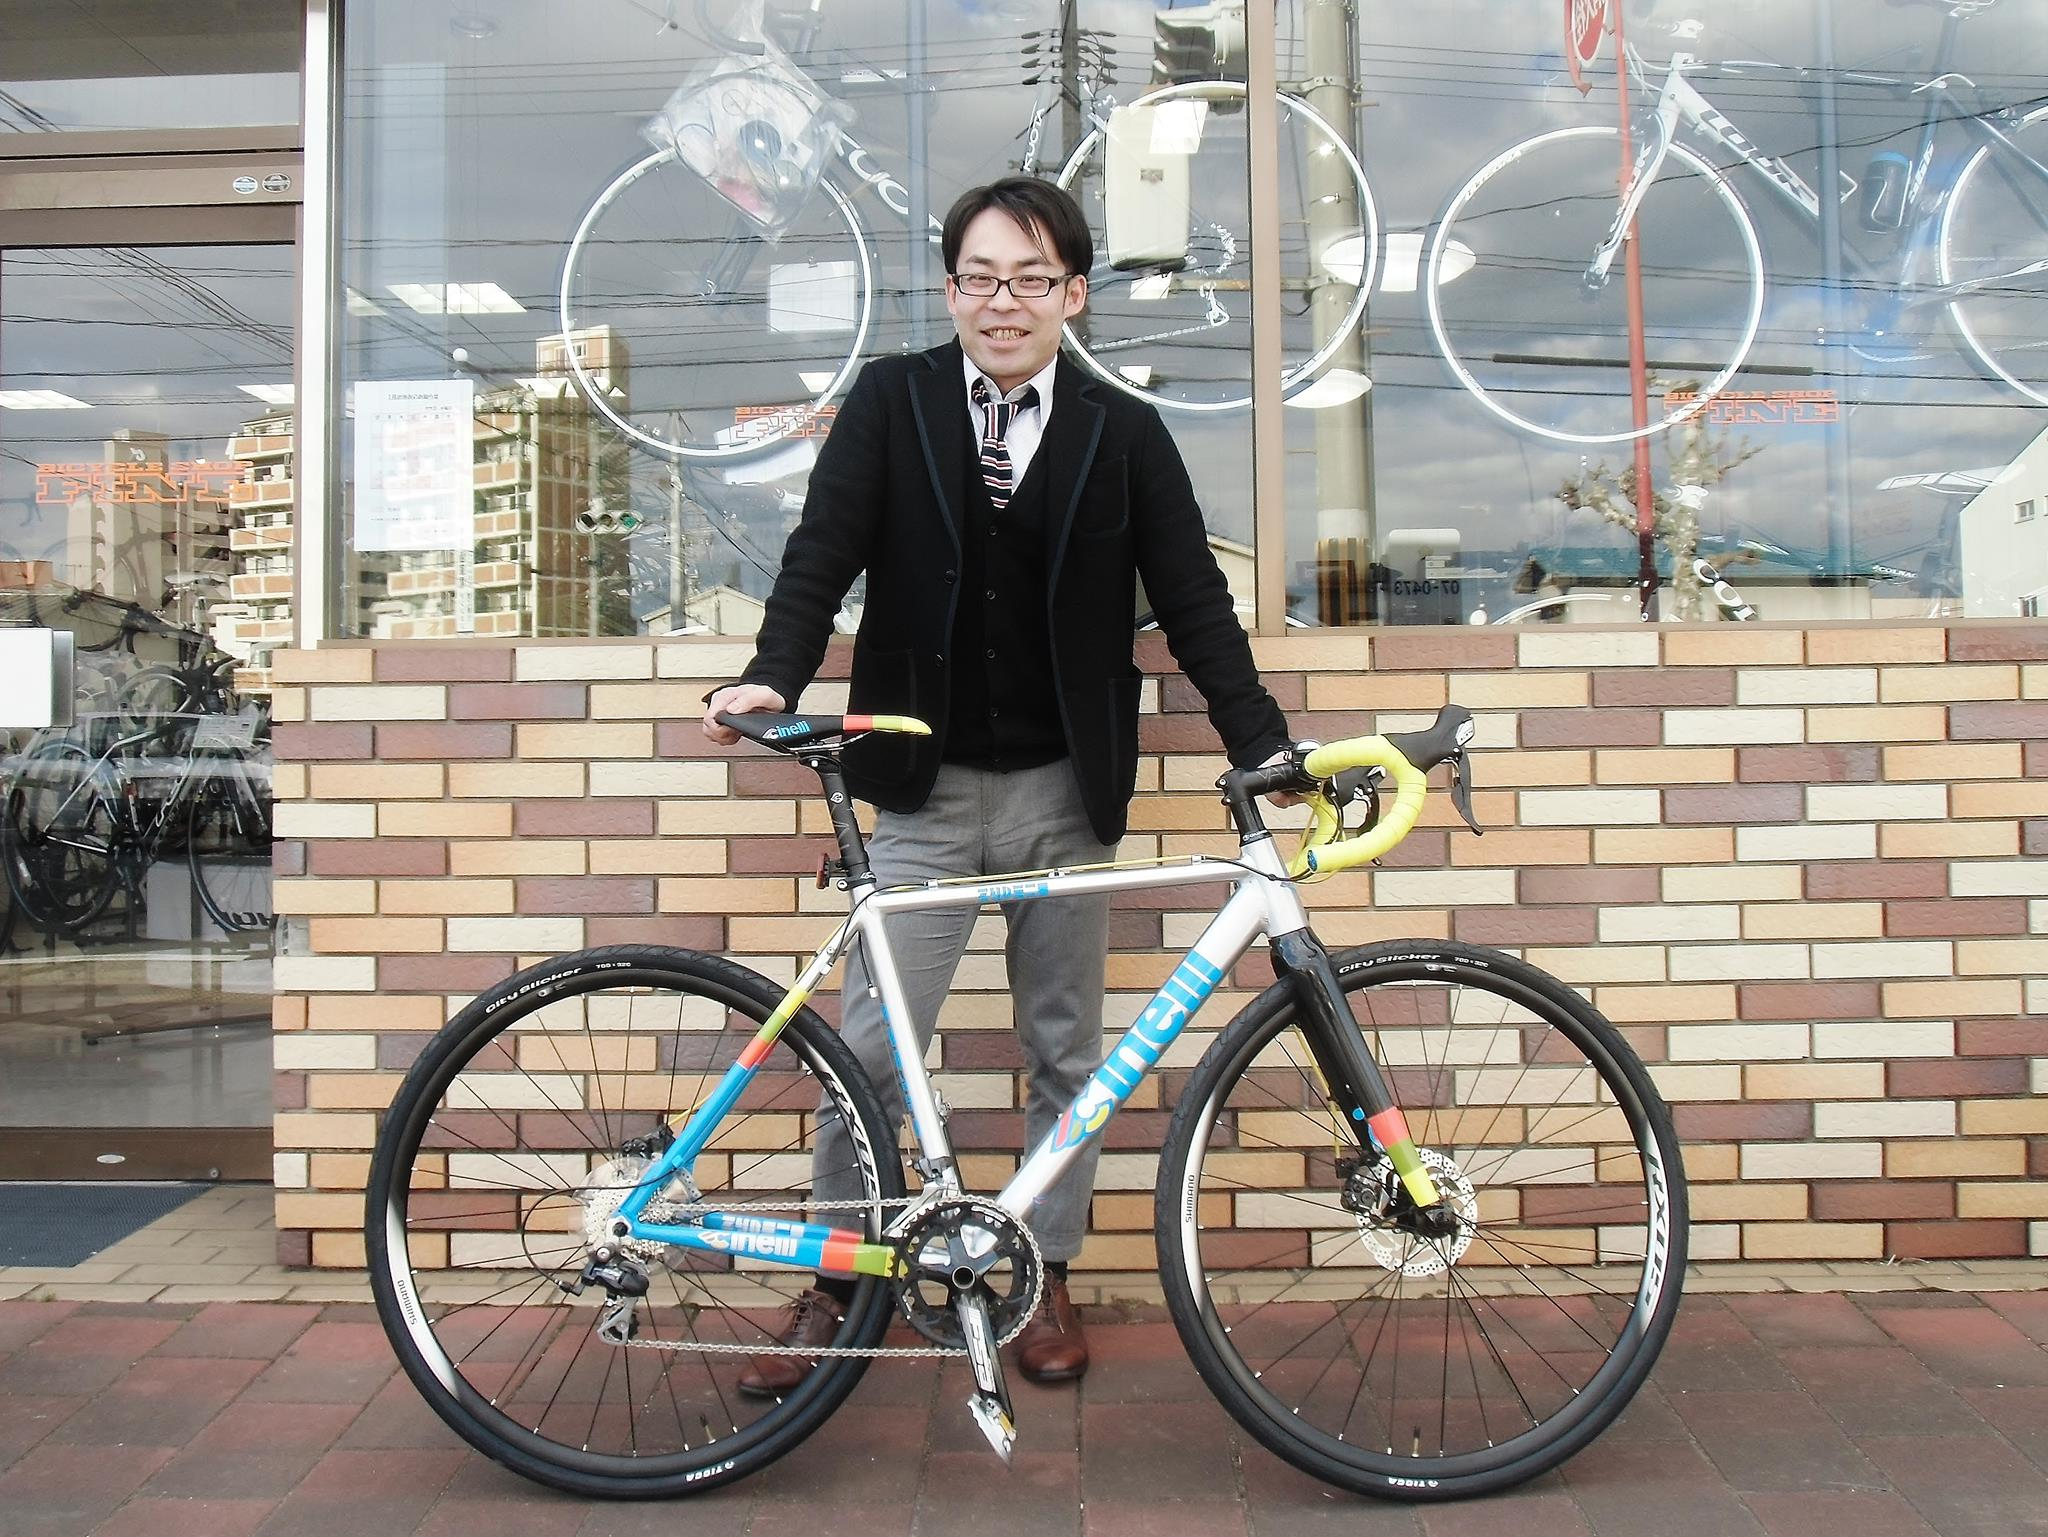 2014 cinelli ZYDECO シクロクロス